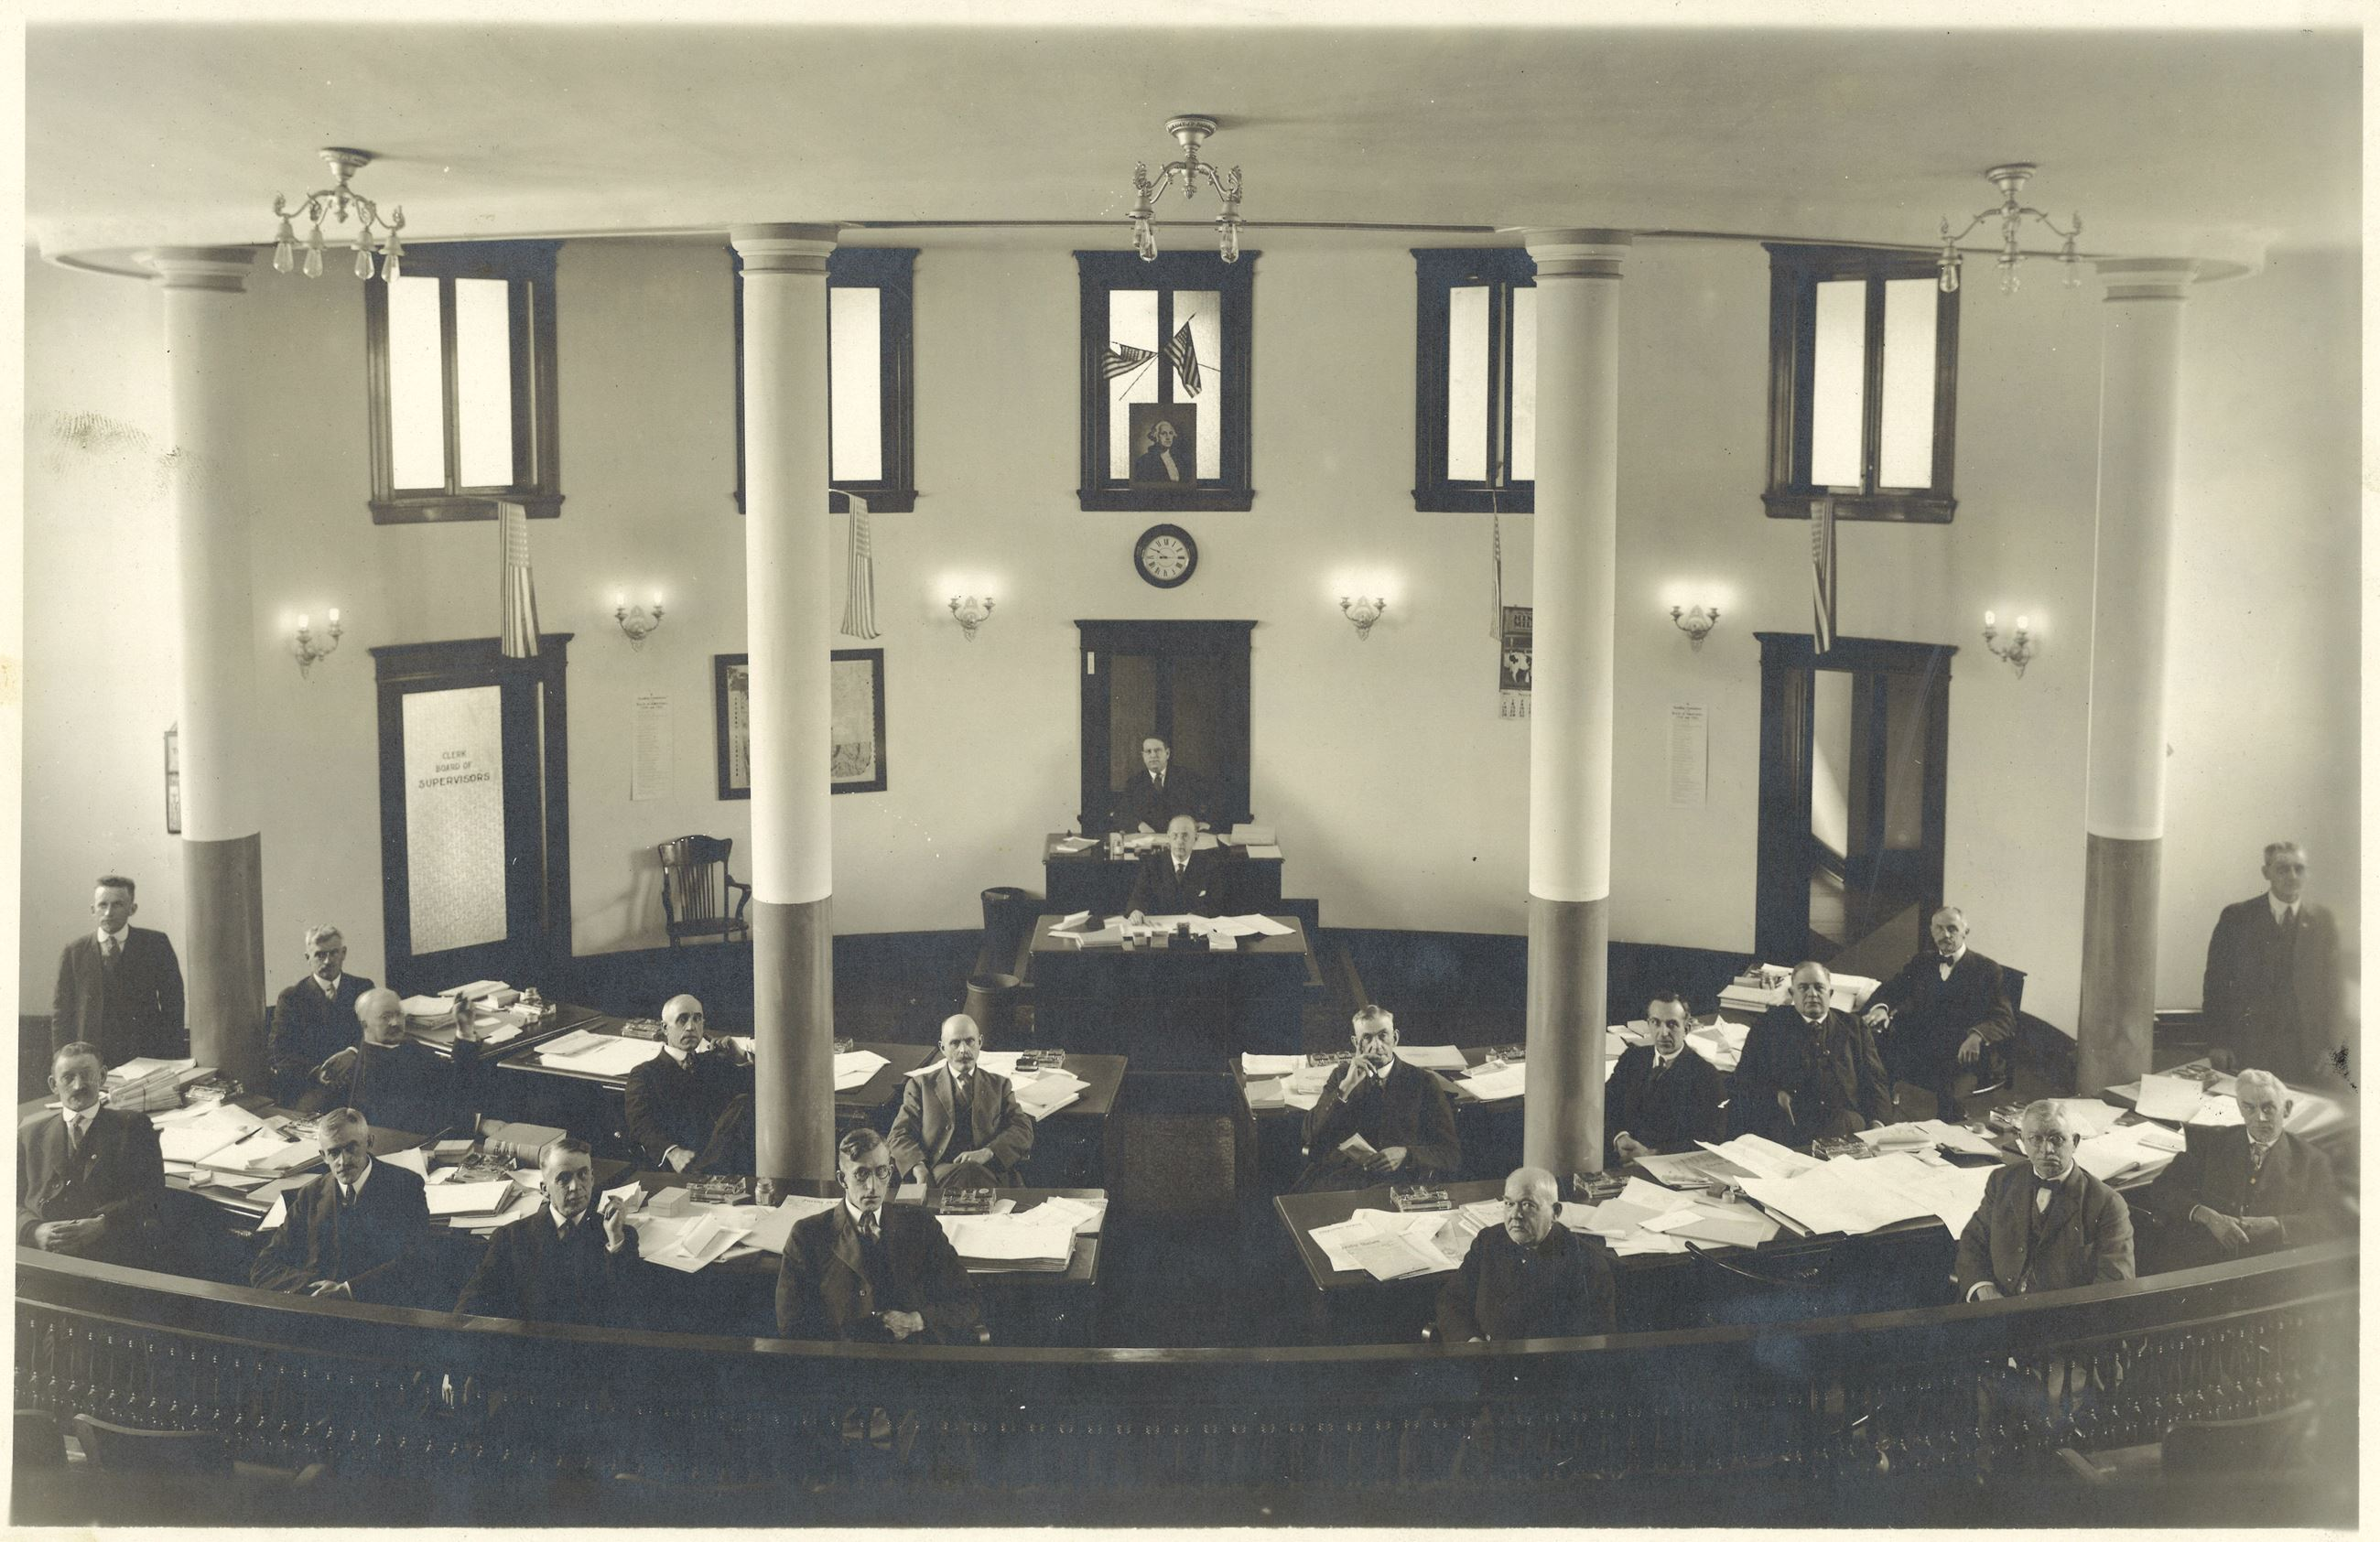 This is a circa 1920 image of the Board of Supervisors taken in the Courthouse Chambers during a mee